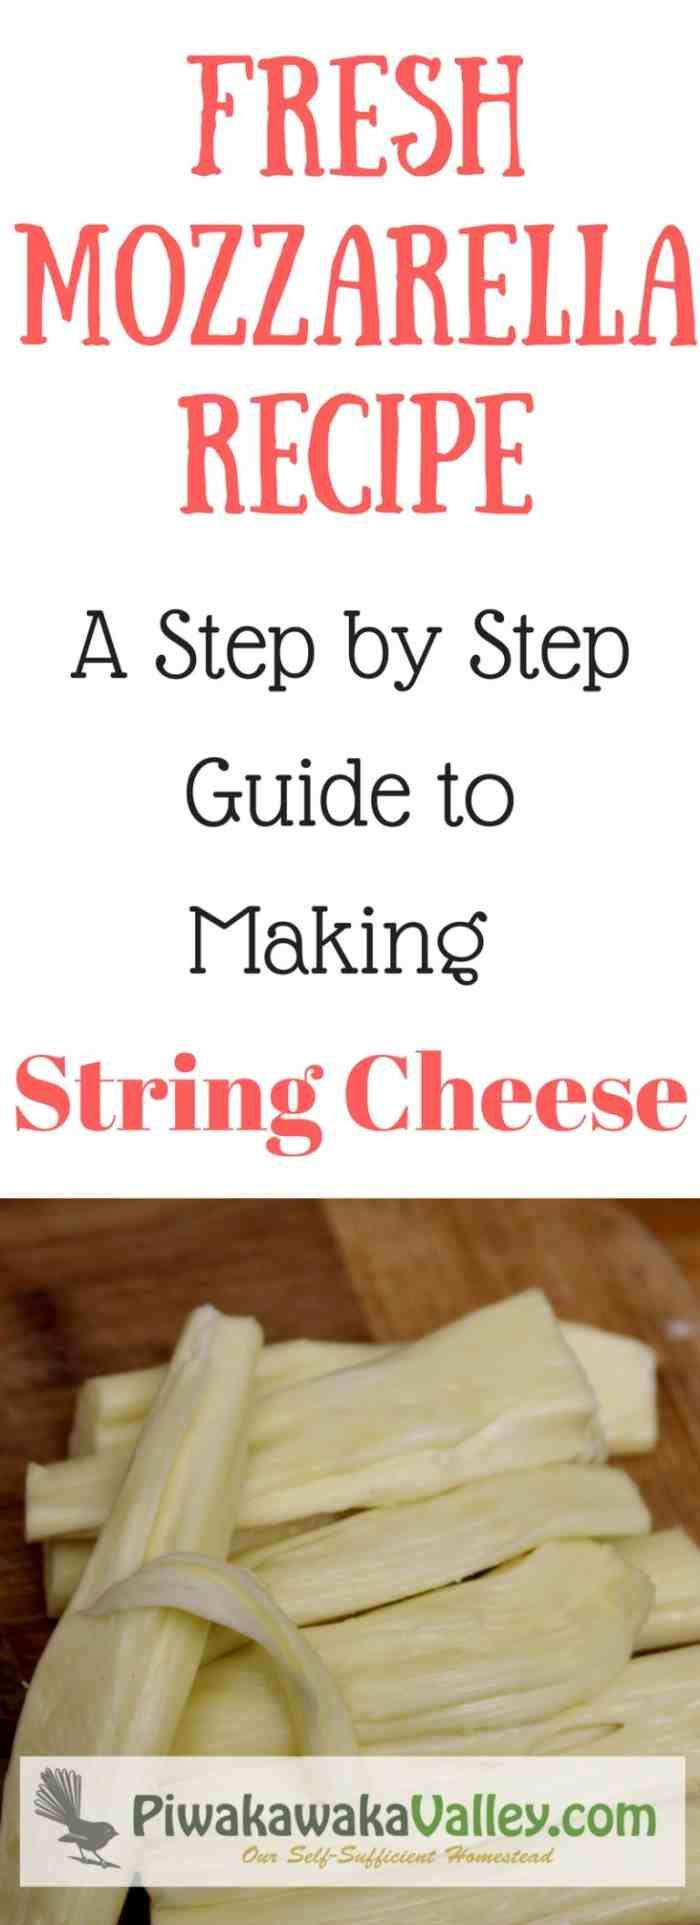 Make your own string cheese at home. It is super yummy and you will be amazed how easy it is!